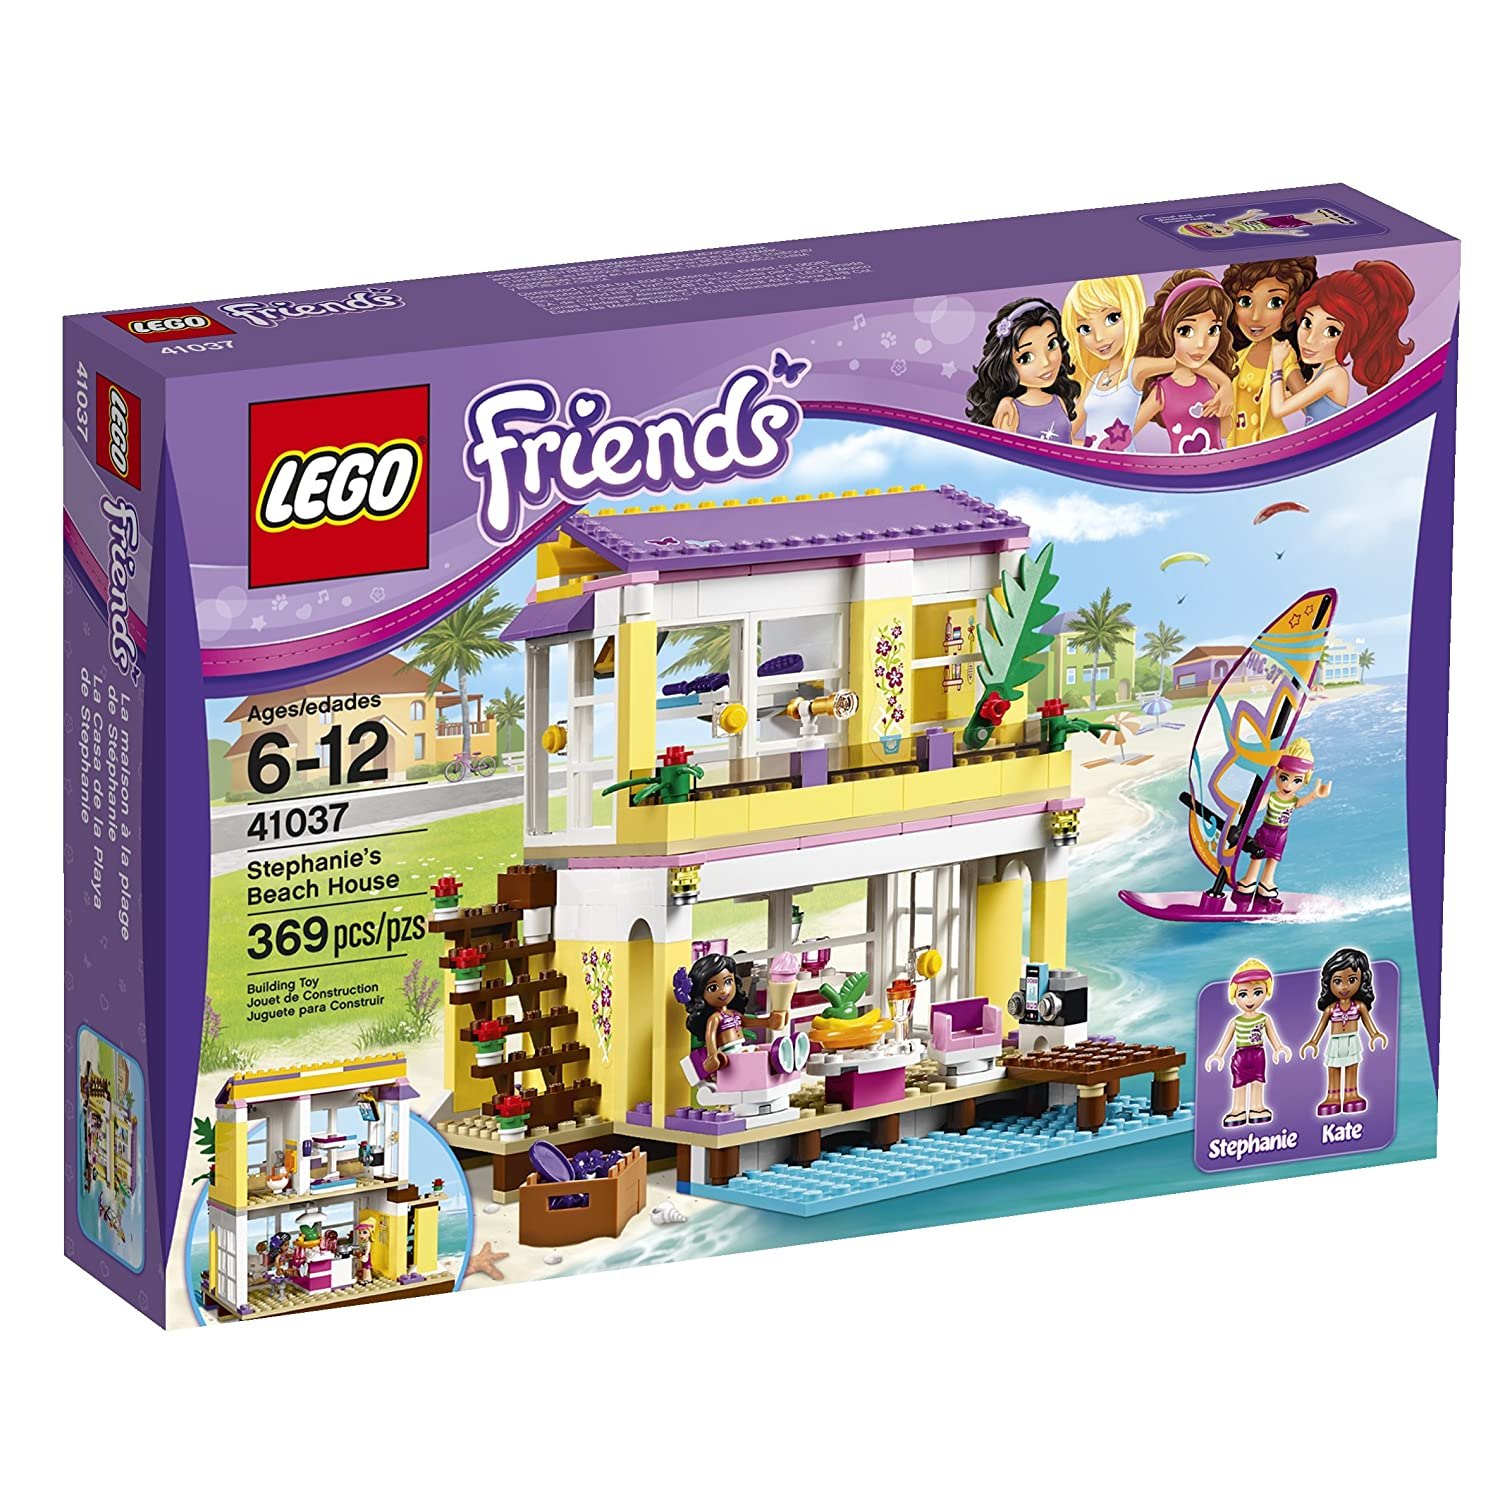 LEGO Friends Stephanie's Beach House, 369 Pcs